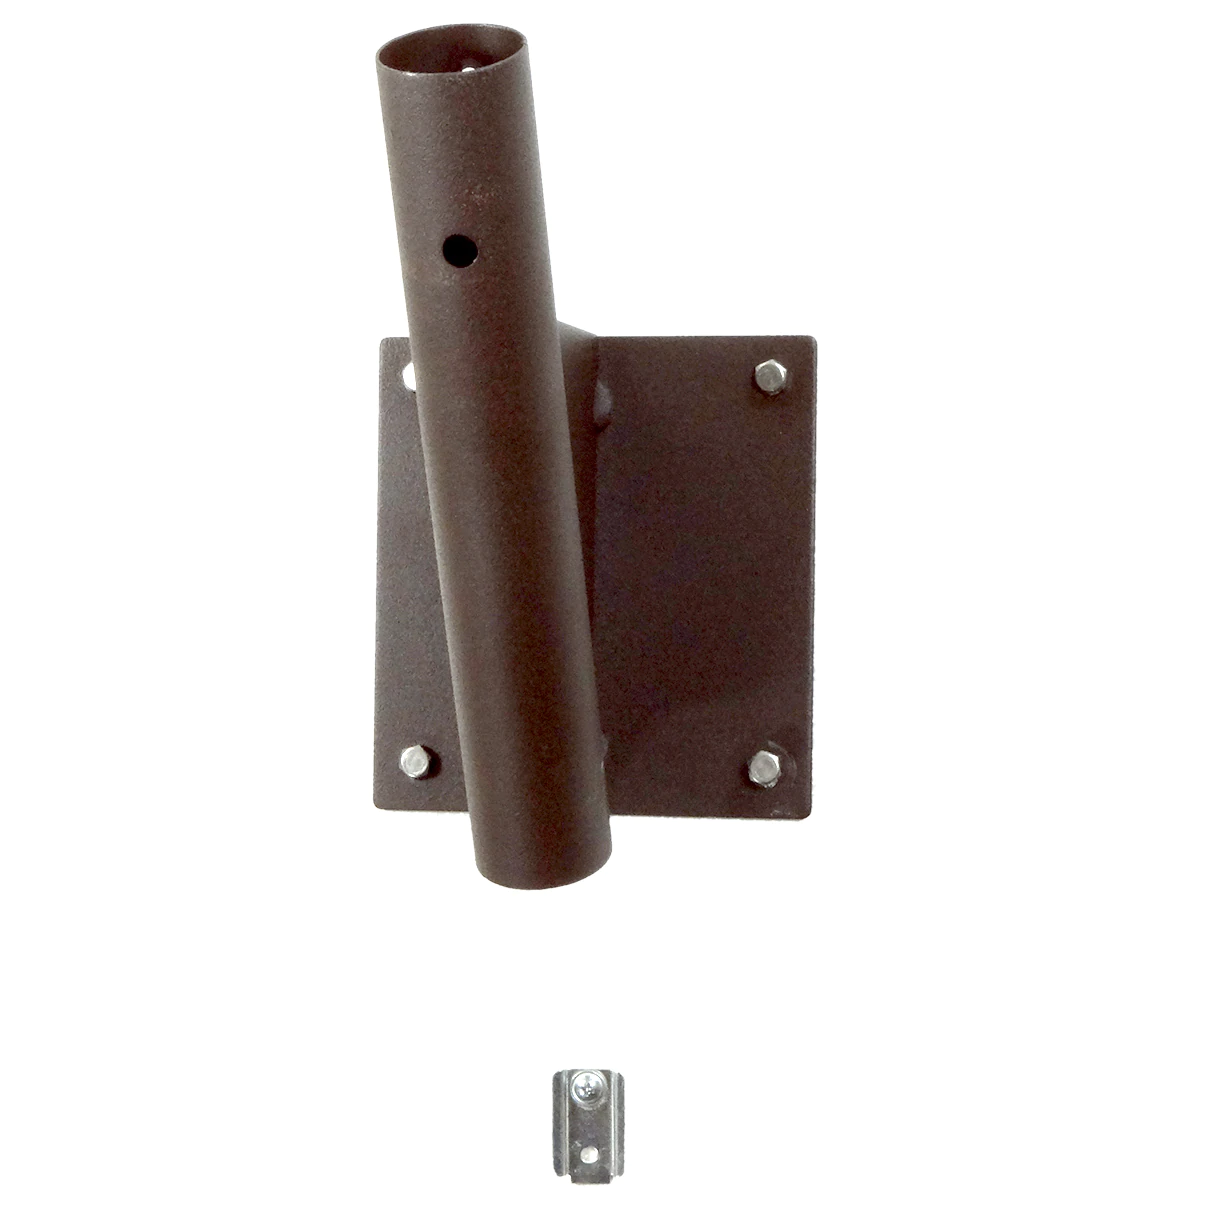 Holding bracket for Outdoor 18 Inch Shrouded Oscillating Fan only-3 speed control on cord